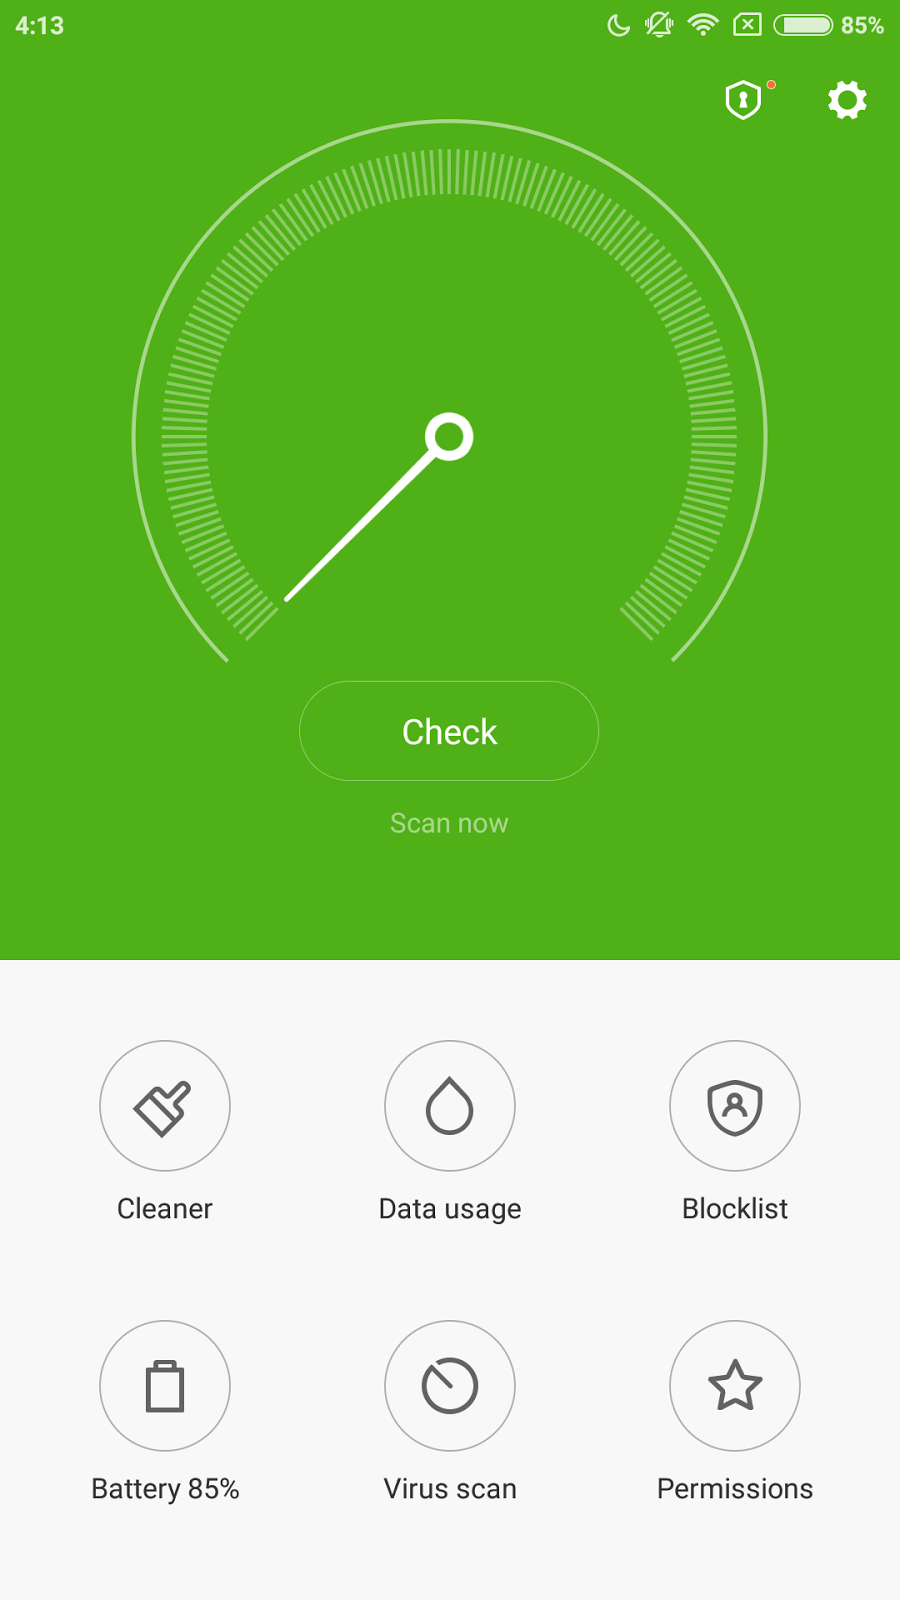 Honso Apps}: How to set up MIUI / Xiaomi / Redmi / Oppo